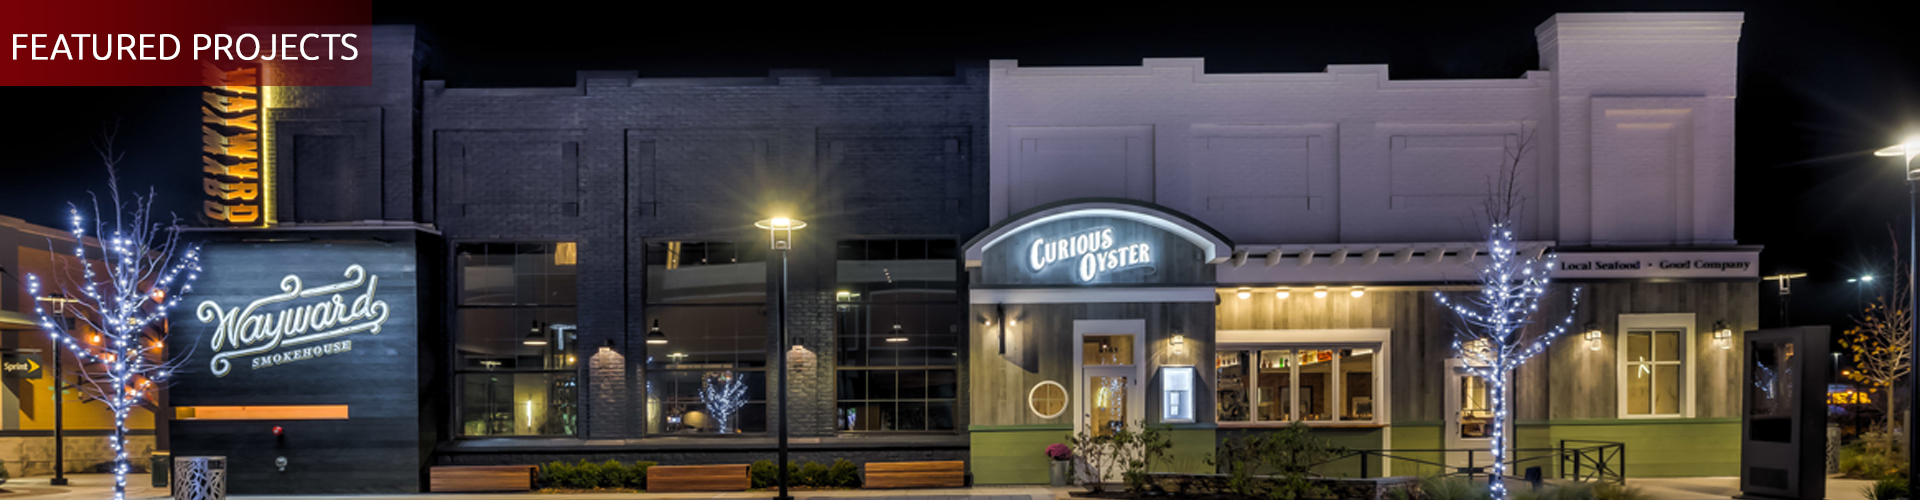 Wayward Smokehouse and the Curious Oyster, the Avenue at White Marsh, by UrbanBuilt